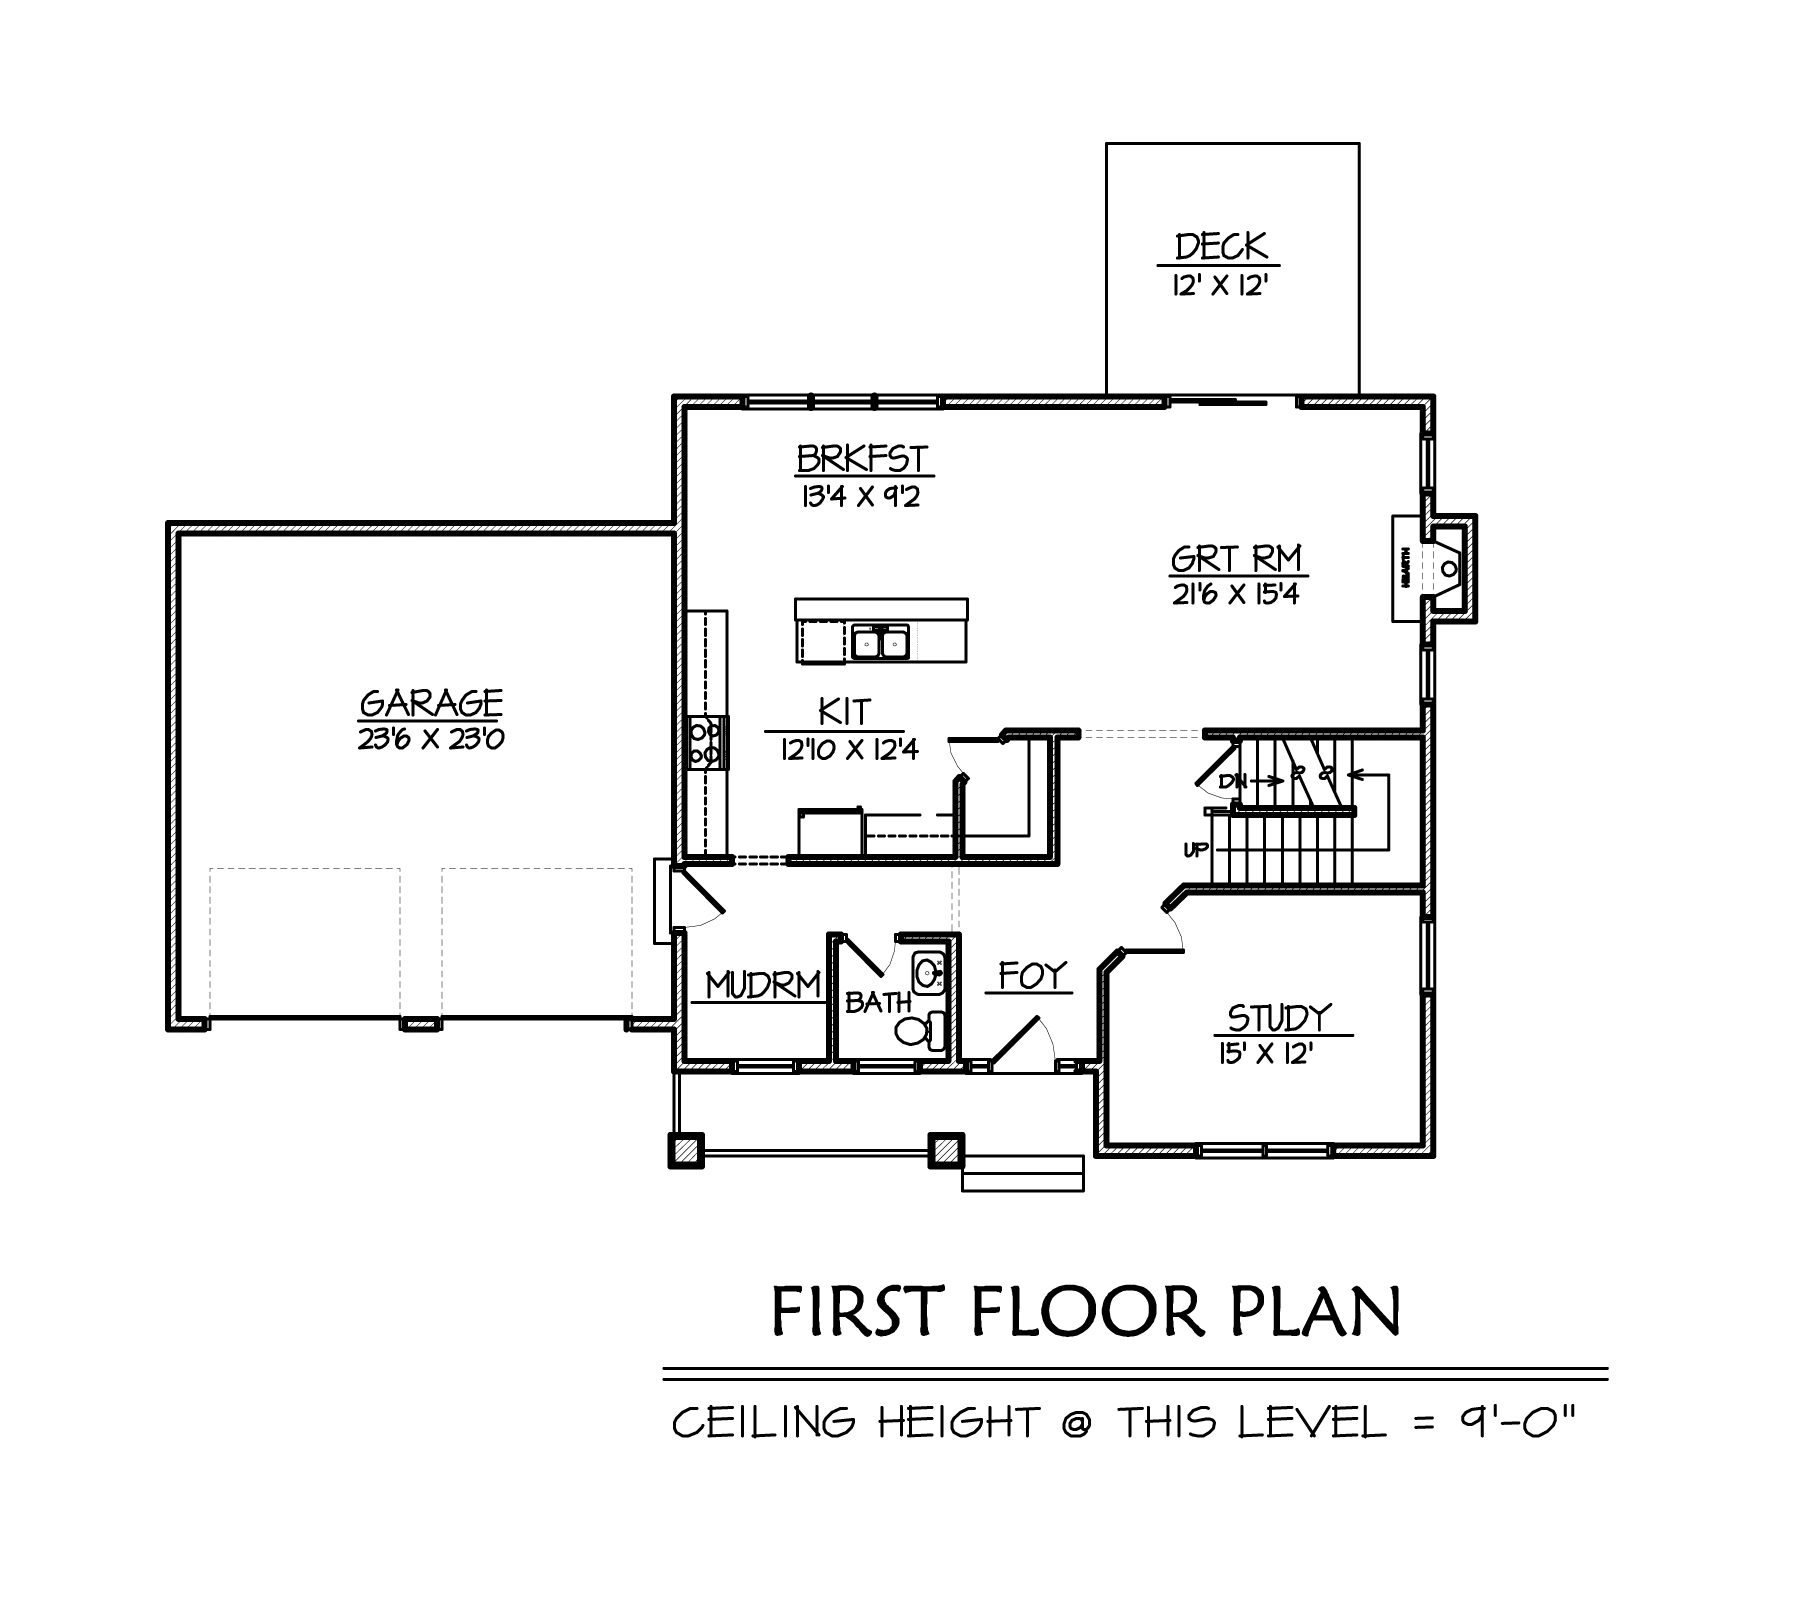 Floor plans for custom built homes in NH